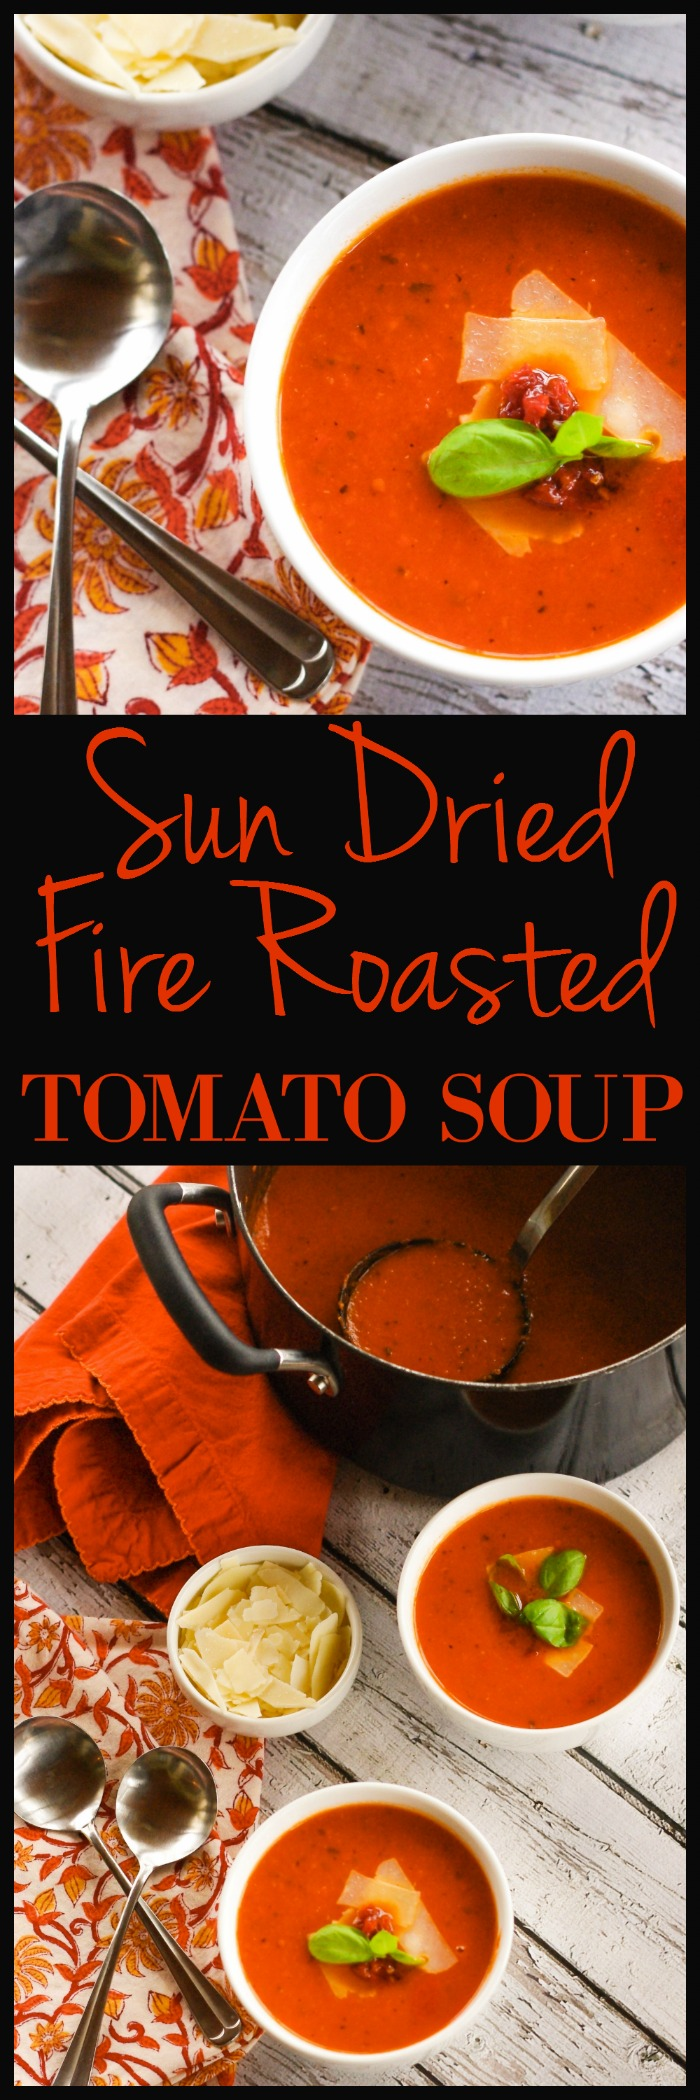 Sun Dried Fire Roasted Tomato Soup | www.homeandplate.com | Each spoonful is bursting with the sweet and tart flavor of fresh tomatoes, the intense taste of the fruit sun dried at the height of ripeness and the salty smoky flavor of the bacon. #YesYouCAN #ad